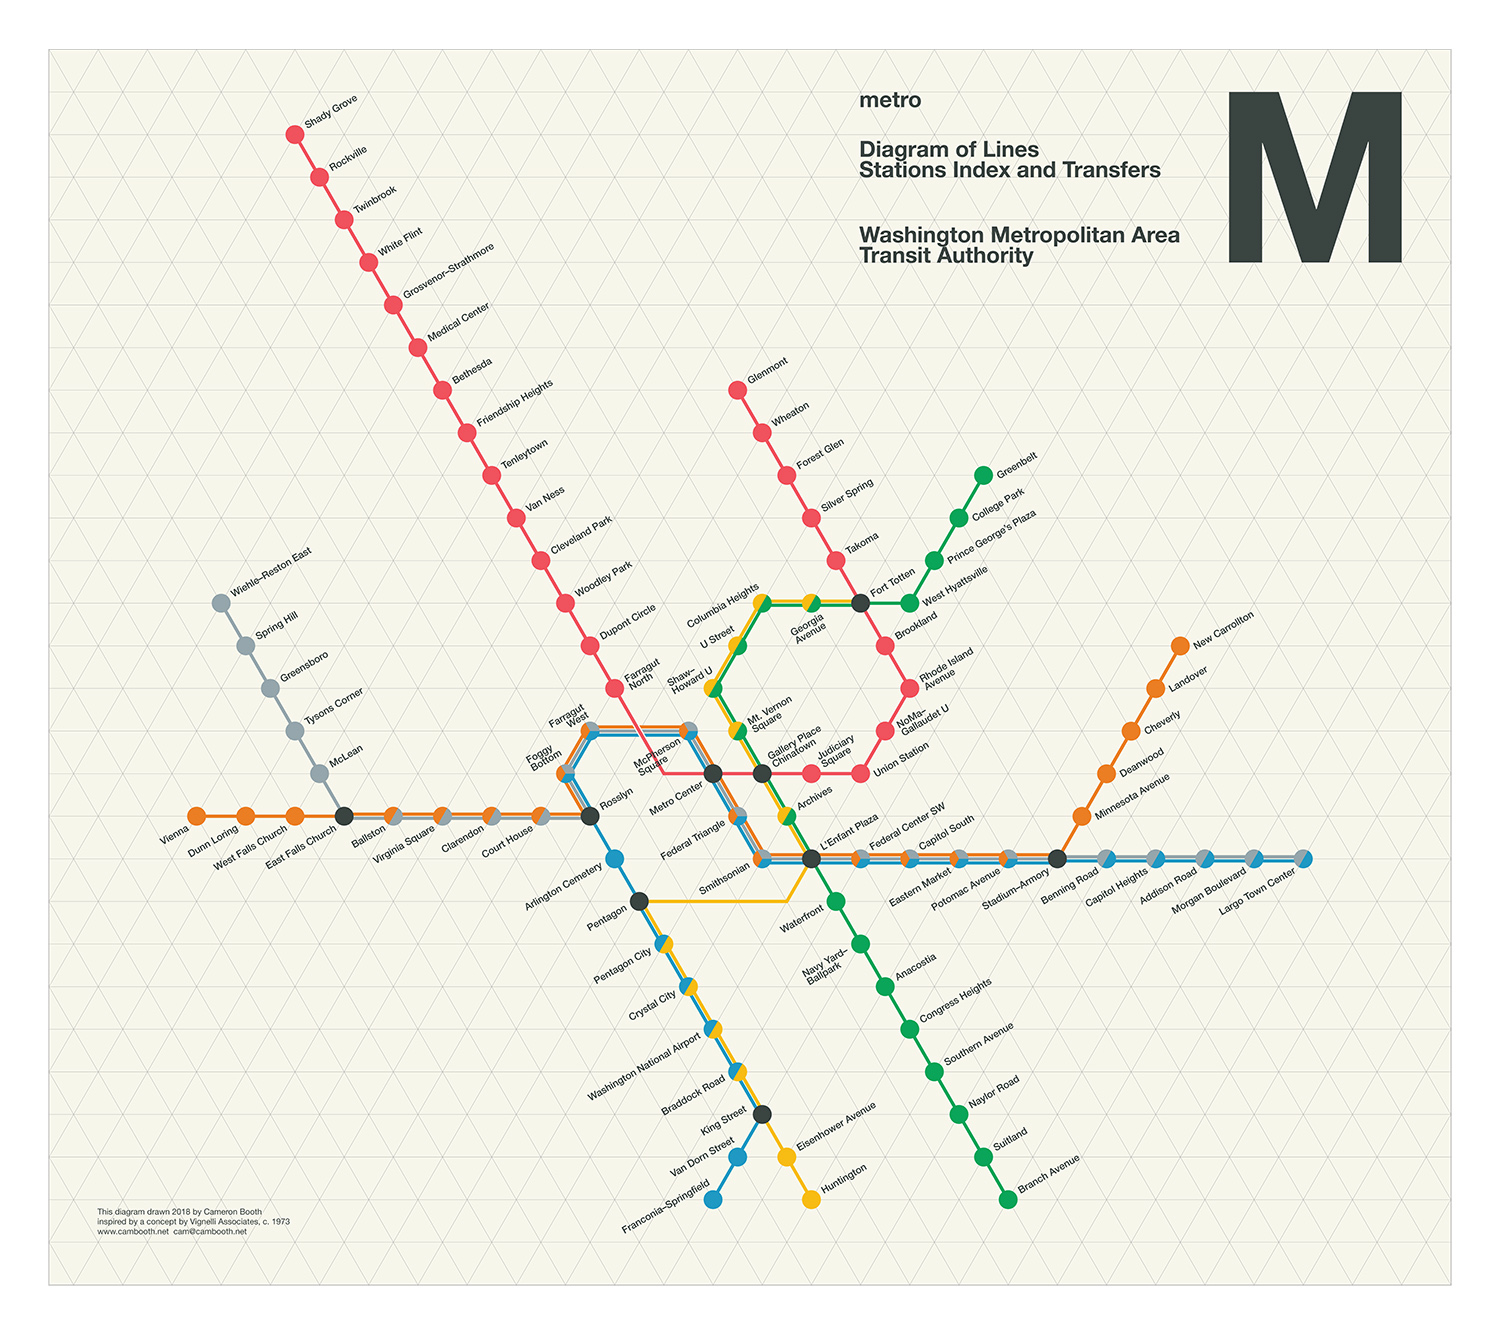 Vignelli Subway Map Current.Washington Dc Metro Map In The Style Of An Unpublished 1973 Concept